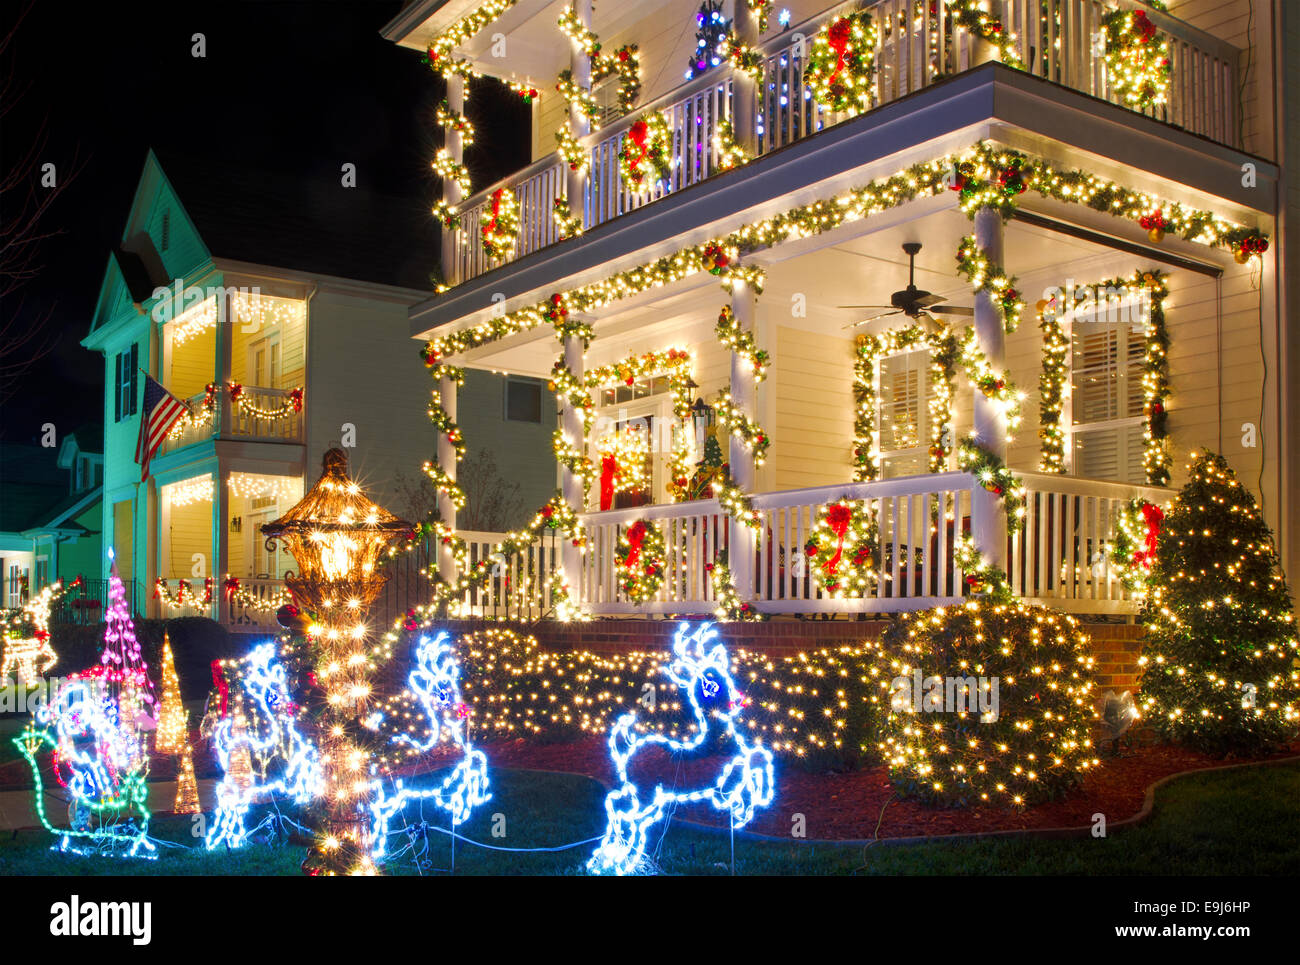 Pictures Of Homes Decorated For Christmas pictures of victorian homes decorated for christmas - home decor